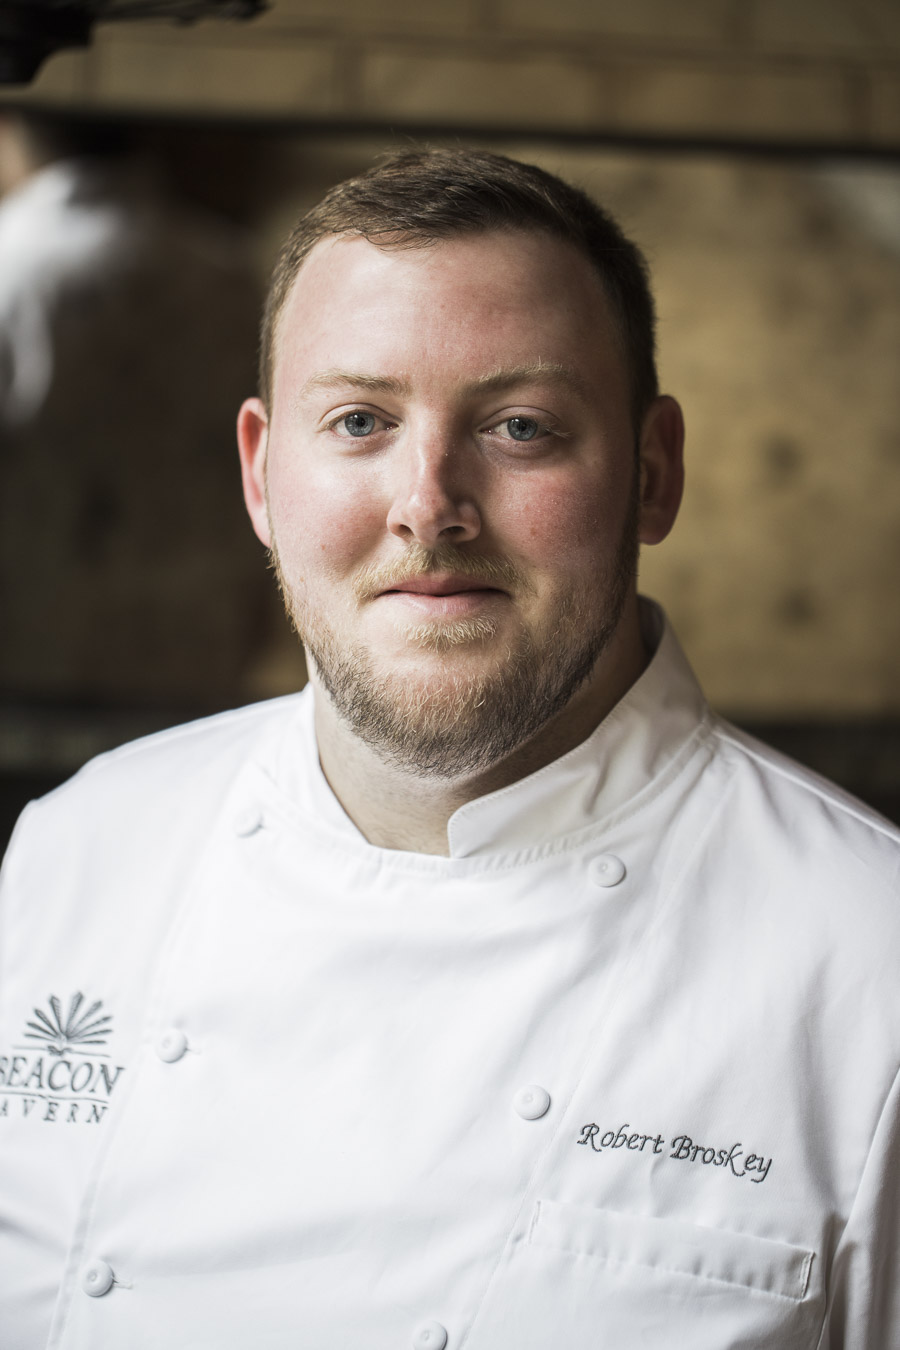 Chef Bob Broskey | Beacon Tavern (PC: Jeff Marini)